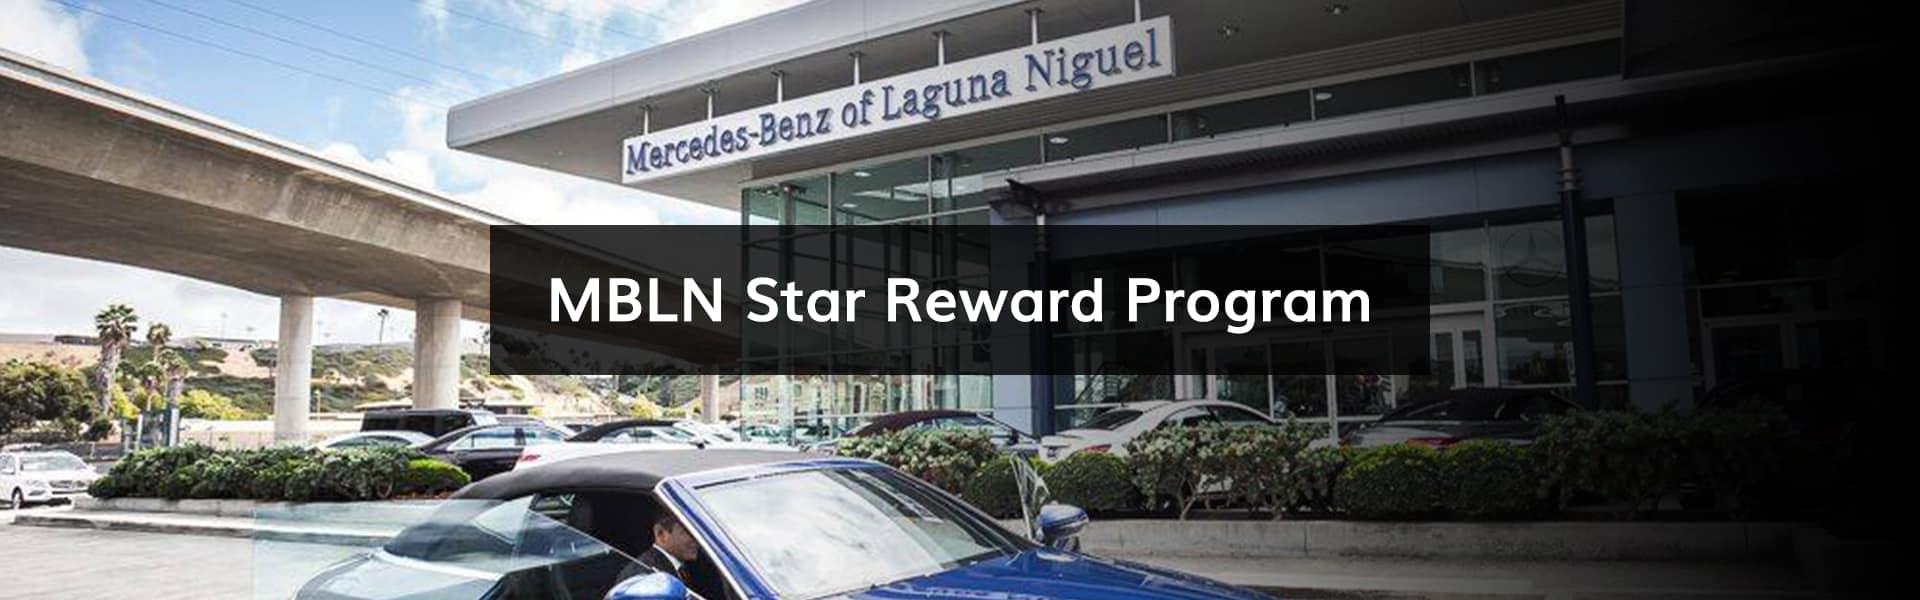 Elegant Mercedes Benz Of Laguna Niguel Welcomes You To Our Exclusive STAR Member  Rewards Program